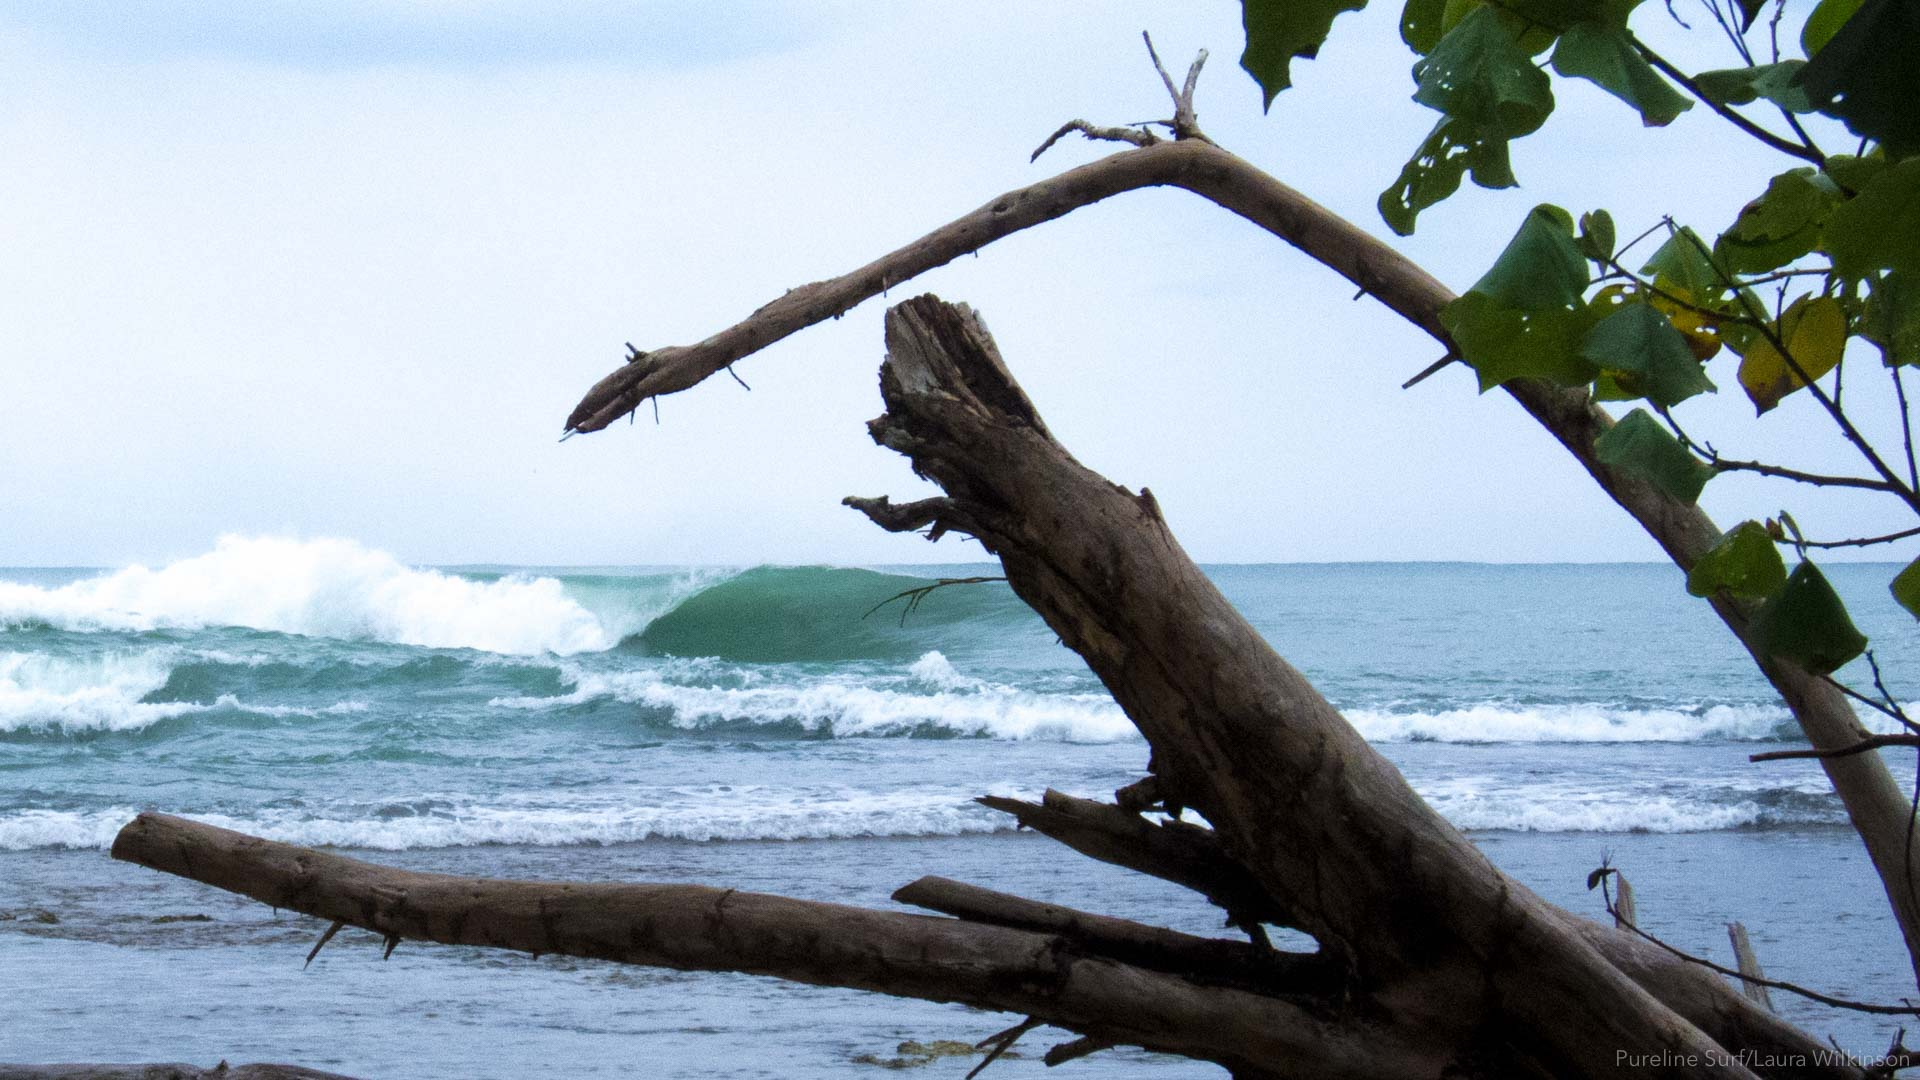 A great wave at Paunch in Bocas Del Toro. A fun spot we like to surf on our strike missions